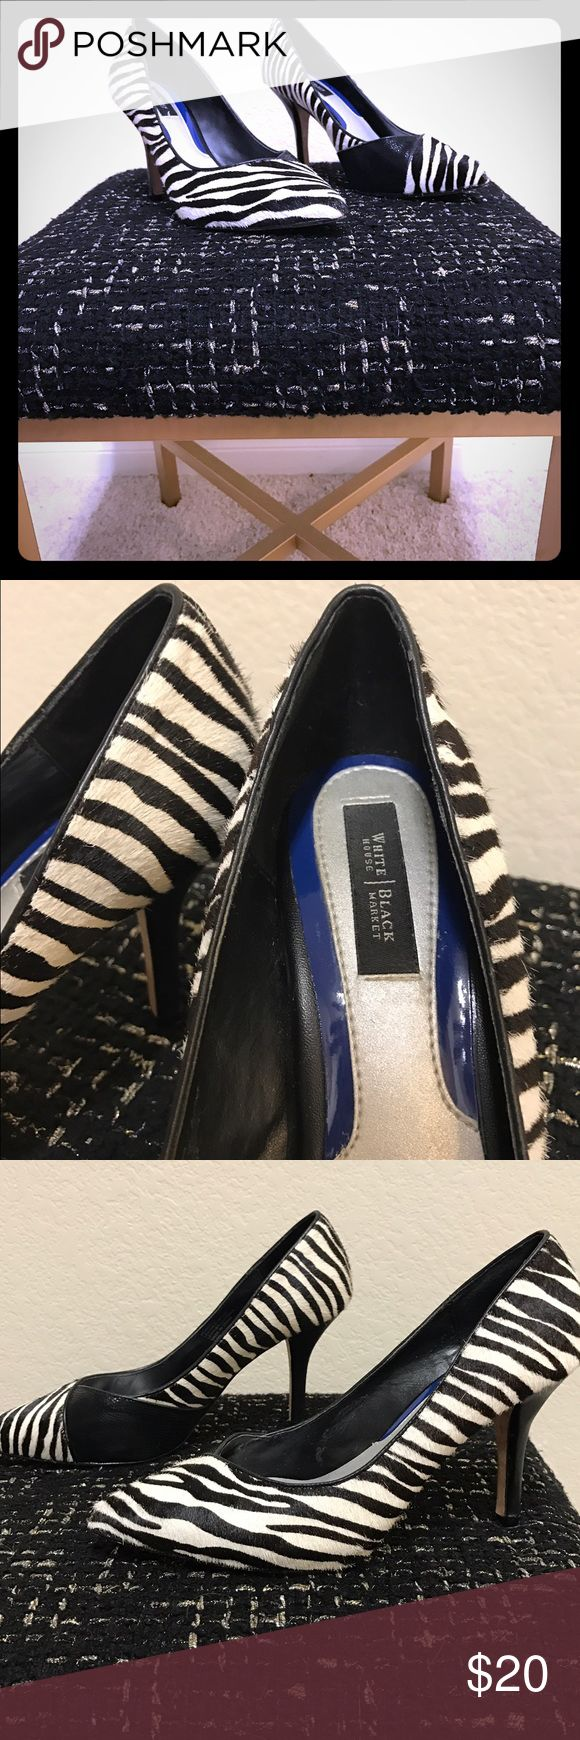 White House Black Market zebra heels Used but in great condition! Looks great with that little black dress! White House Black Market Shoes Heels